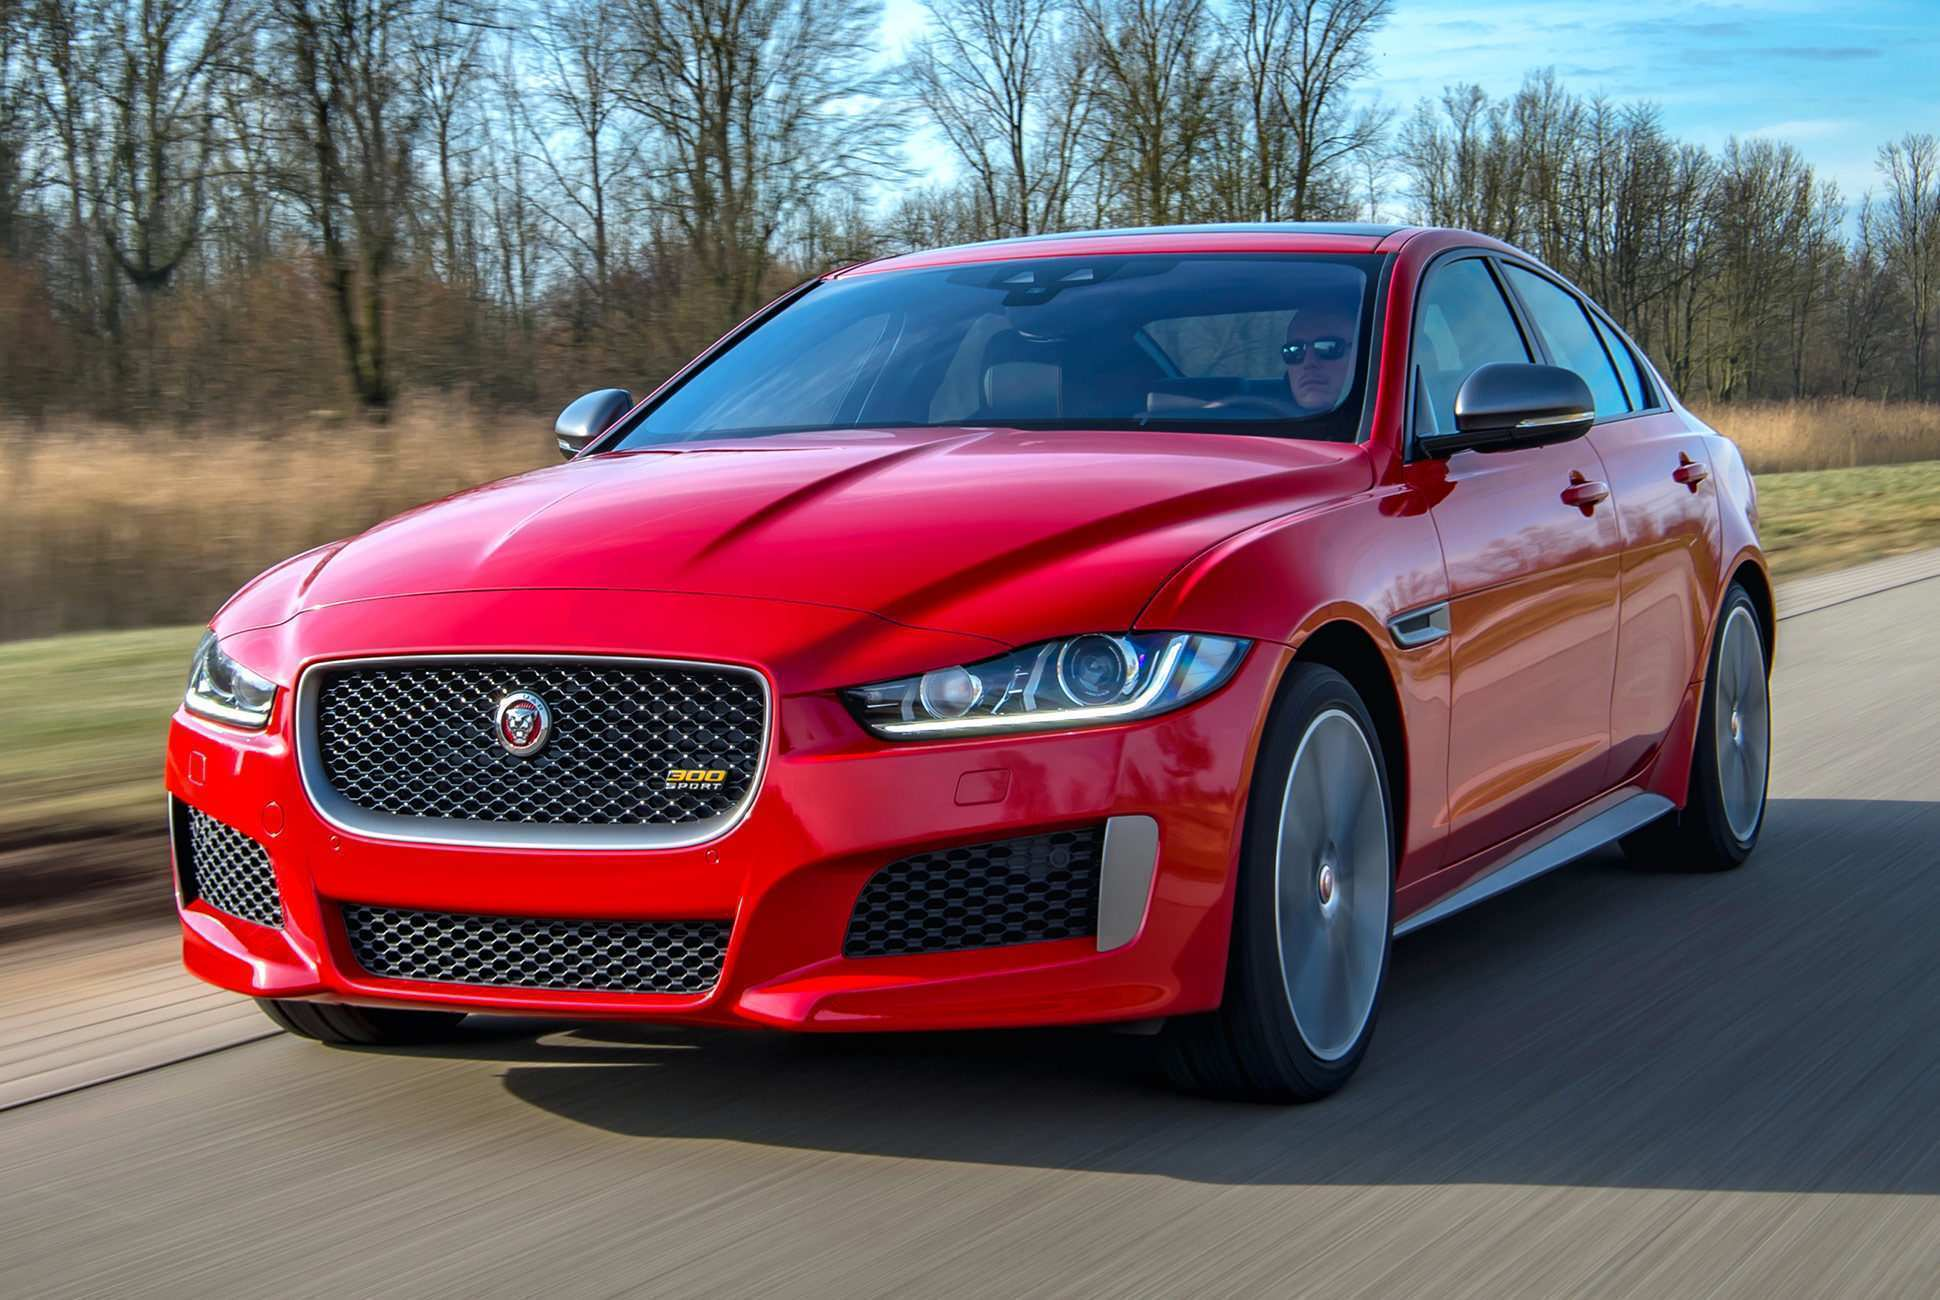 13 Best Jaguar Car 2019 Prices